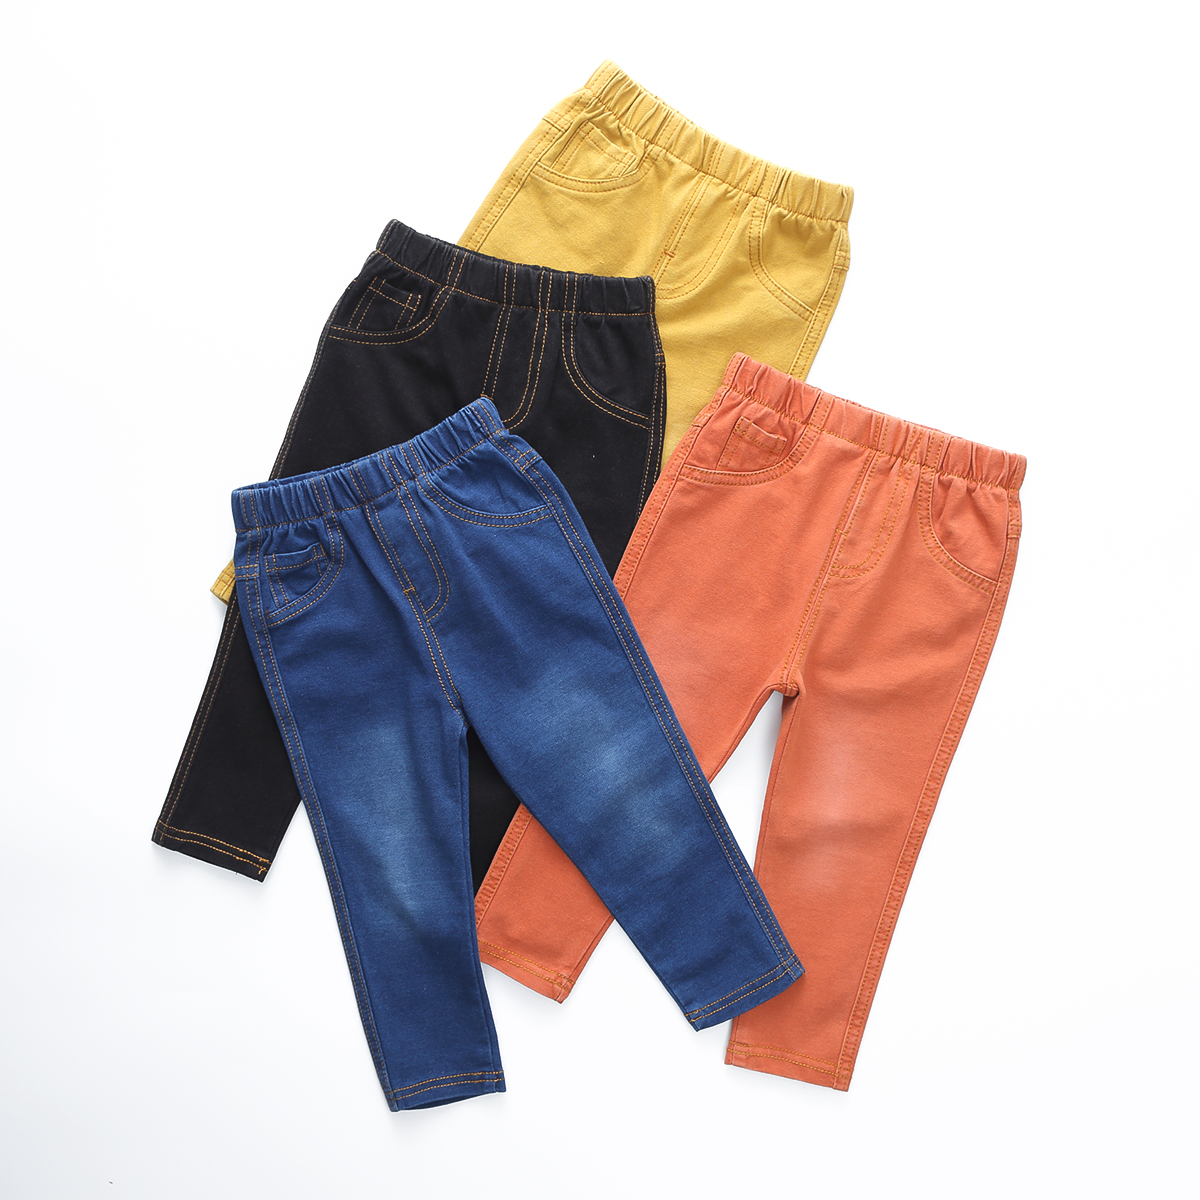 Childrenu0026#39;s Jeans Denim Pants Skinny Trousers Spring u0026 Autumn Clothes Baby to Toddler Unisex-in ...